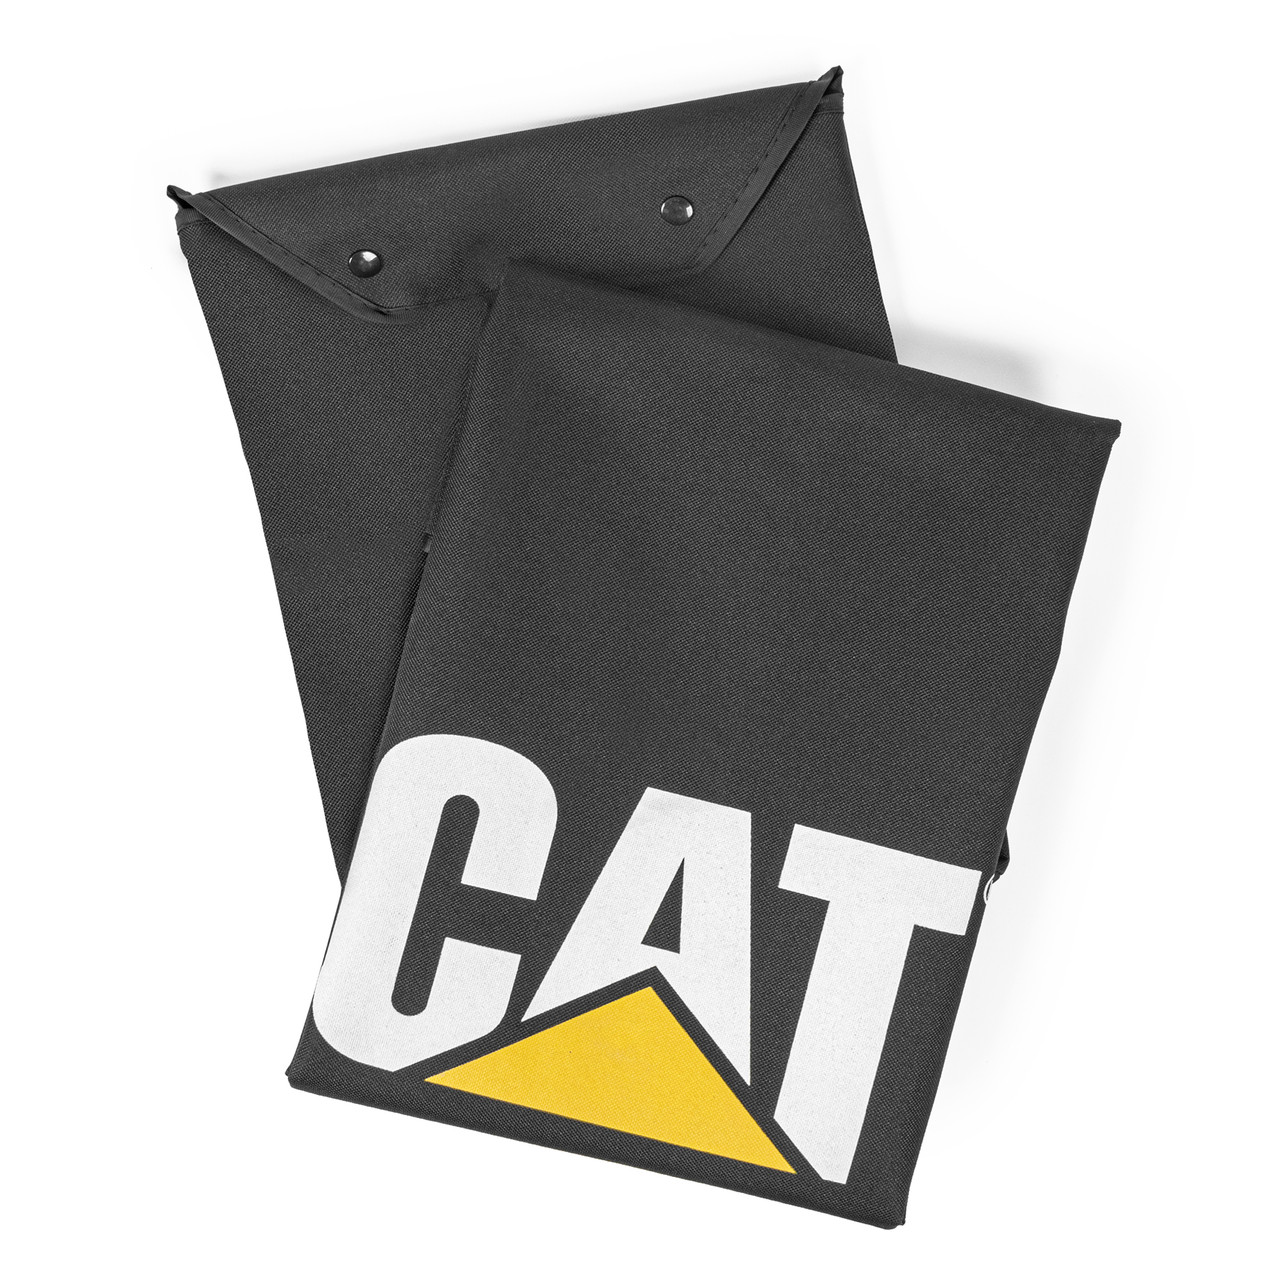 Wide Size 78x43 inch CAT Frost Guard Toughest Car Windshield Snow Cover for Ice /& Sleet Includes Magnetic Anti-Theft Freeze Protector for Auto Coupe Sedan Truck Van SUV Weatherproof for Winter